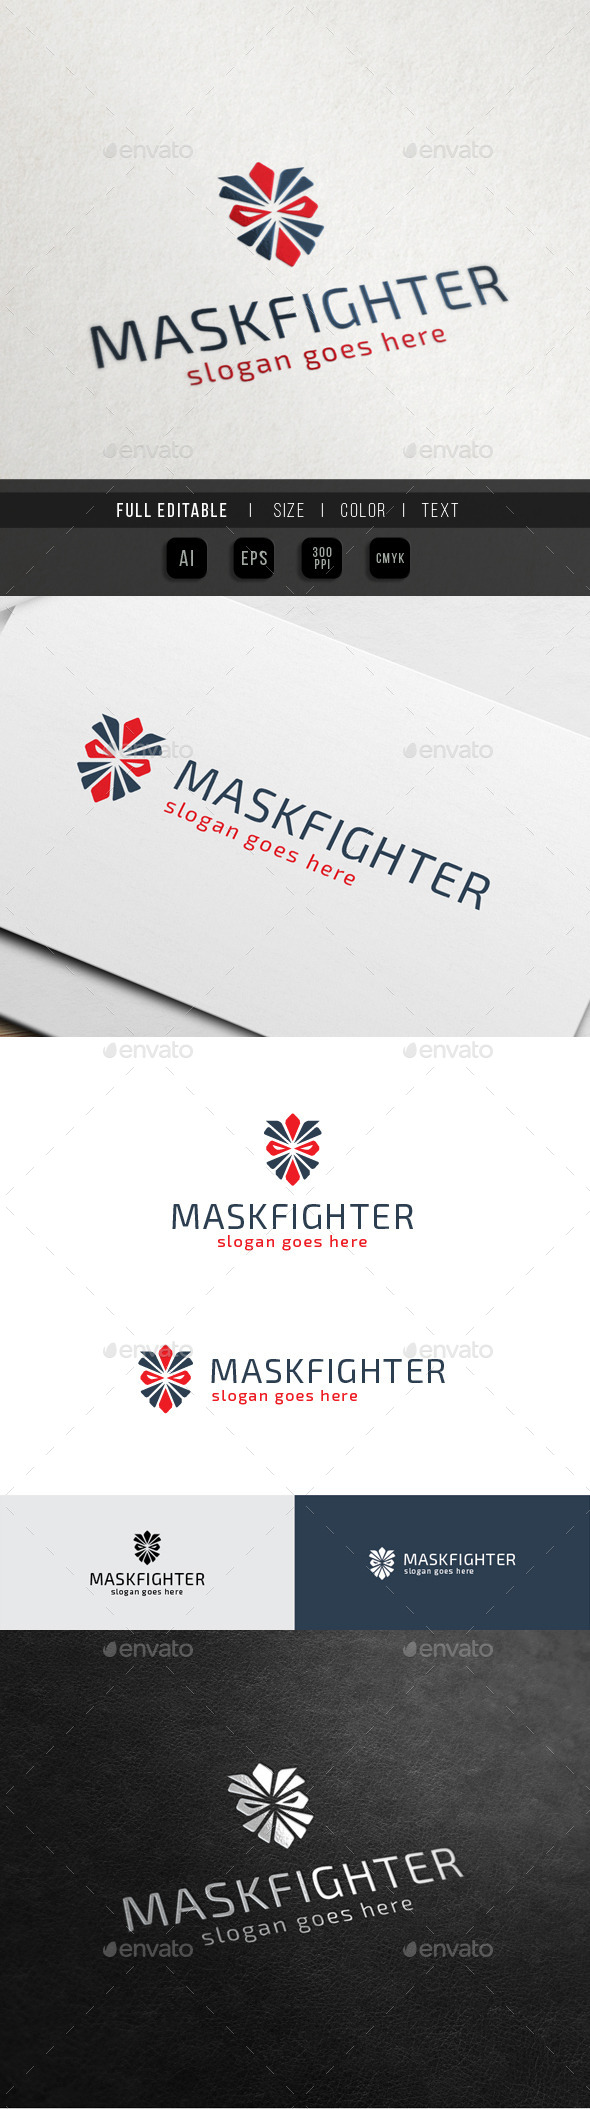 Mask Fighter - Rider Club - Abstract Logo Templates